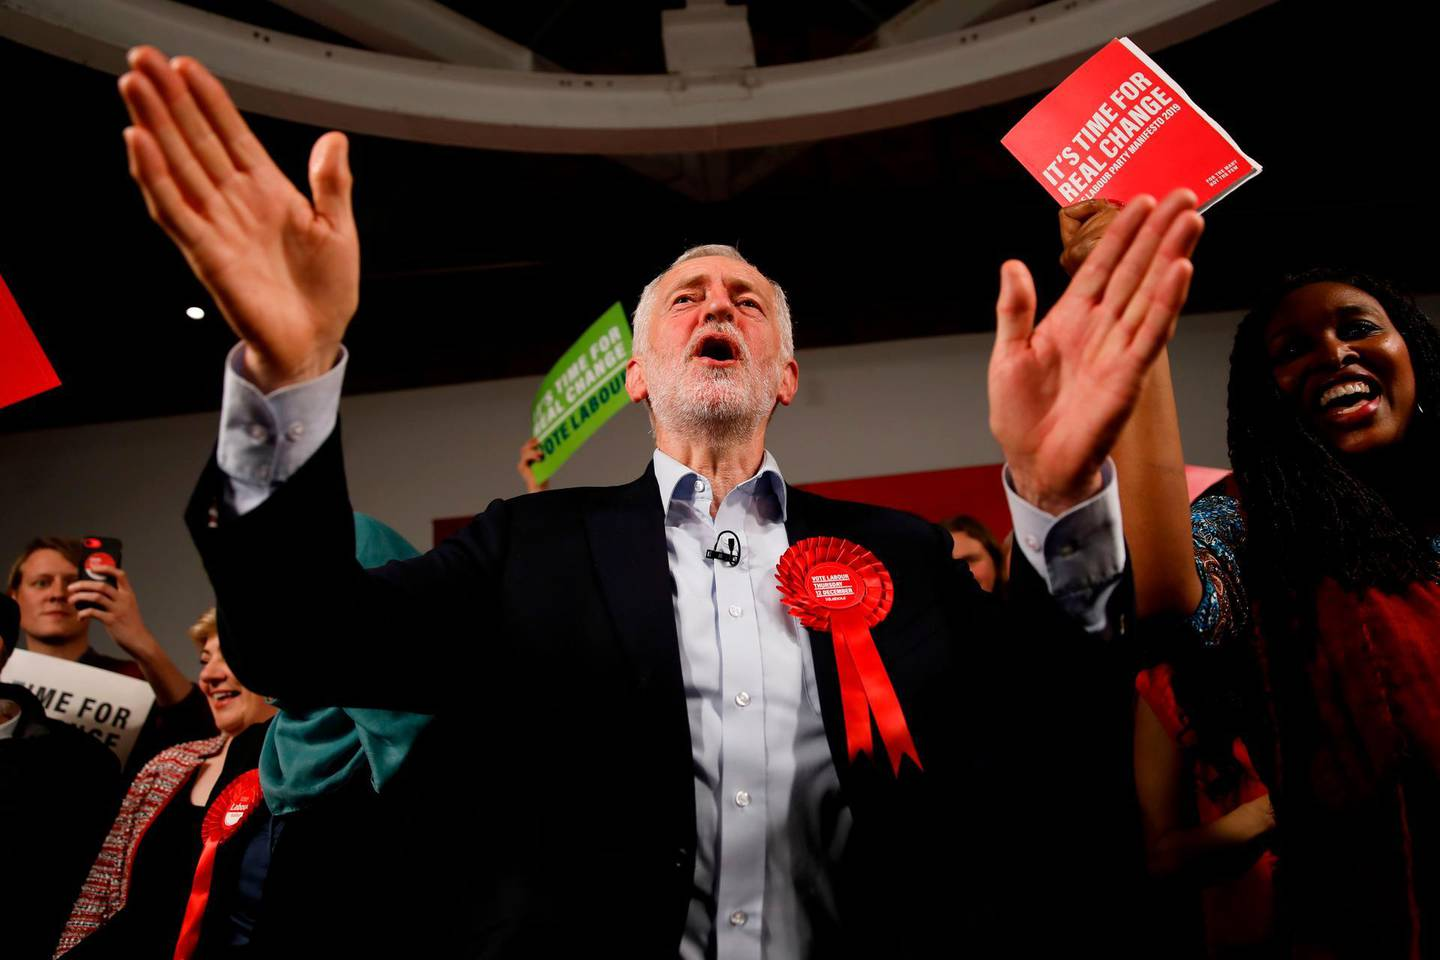 (FILES) In this file photo taken on December 11, 2019 Britain's Labour Party leader Jeremy Corbyn gestures with supporters and activists after delivering a speech during a general election campaign rally in East London. Britain's Labour party on Sunday goes online to try to reinvigorate grassroots support after years of bitter ideological in-fighting and stinging electoral failure.  / AFP / Tolga AKMEN